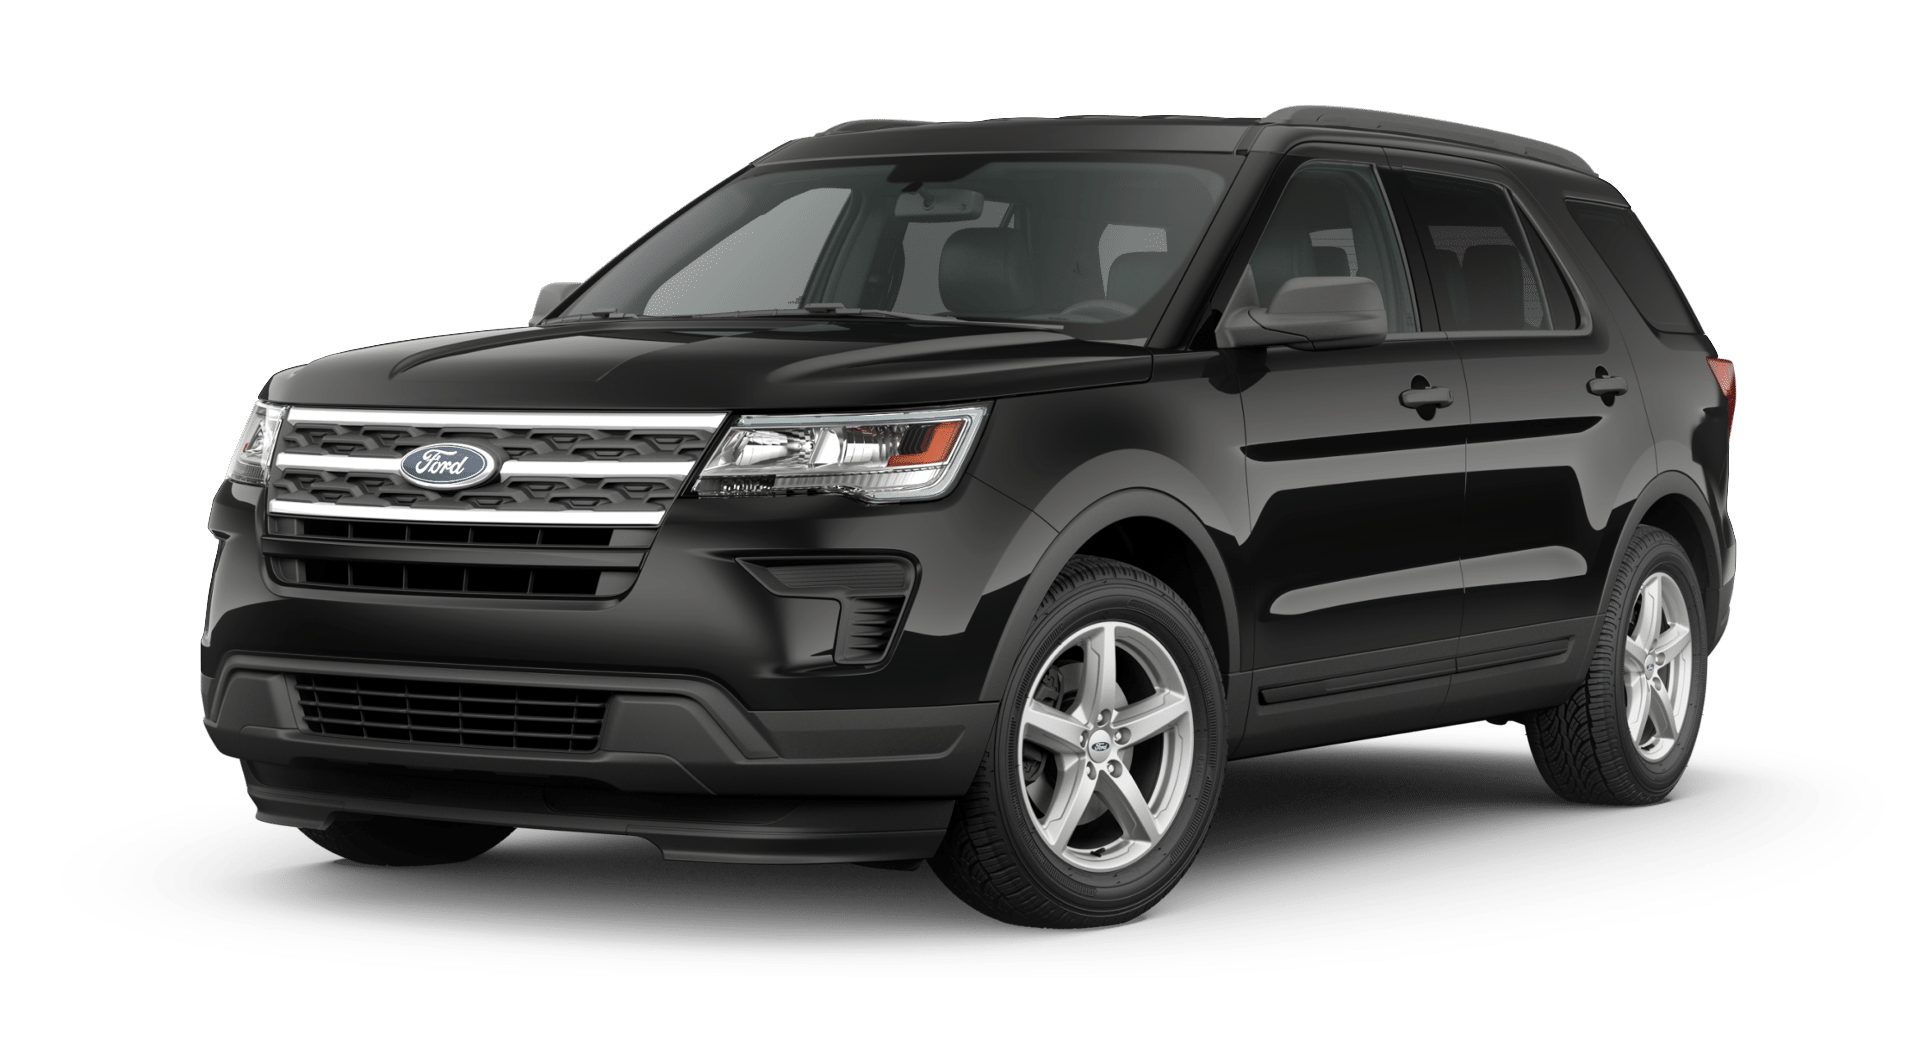 Ford Explorer 2017 Lease >> New Ford Specials Lease Deals Rebates Incentives Los Angeles